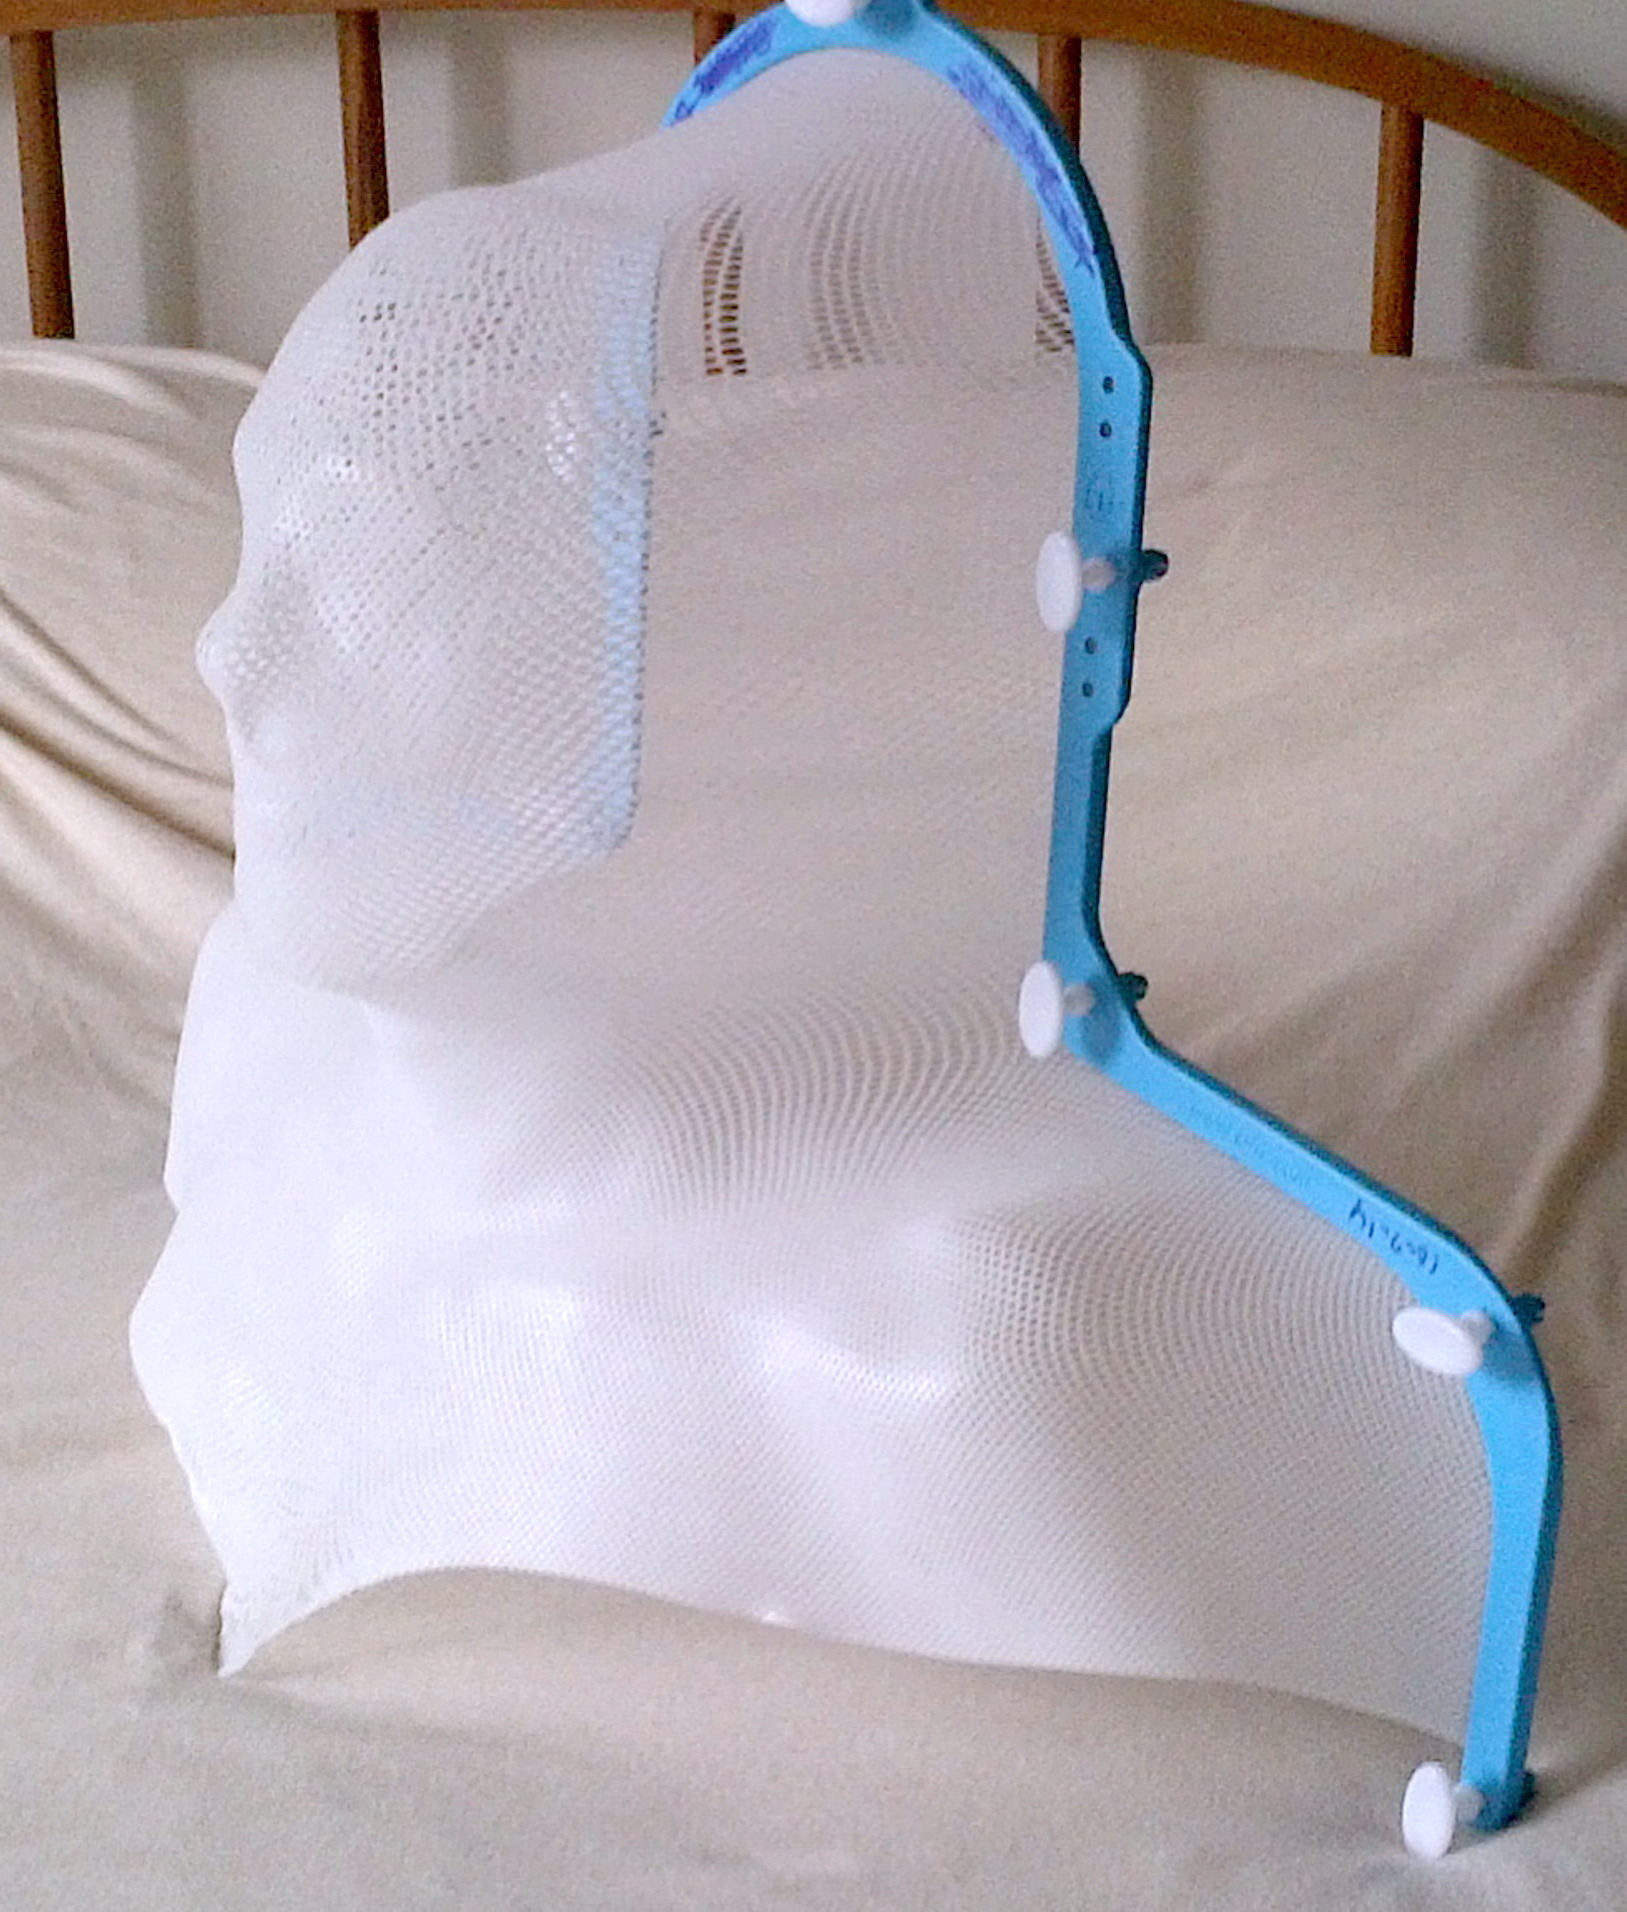 radiation mask --- bolted my head to table for radiation to neck